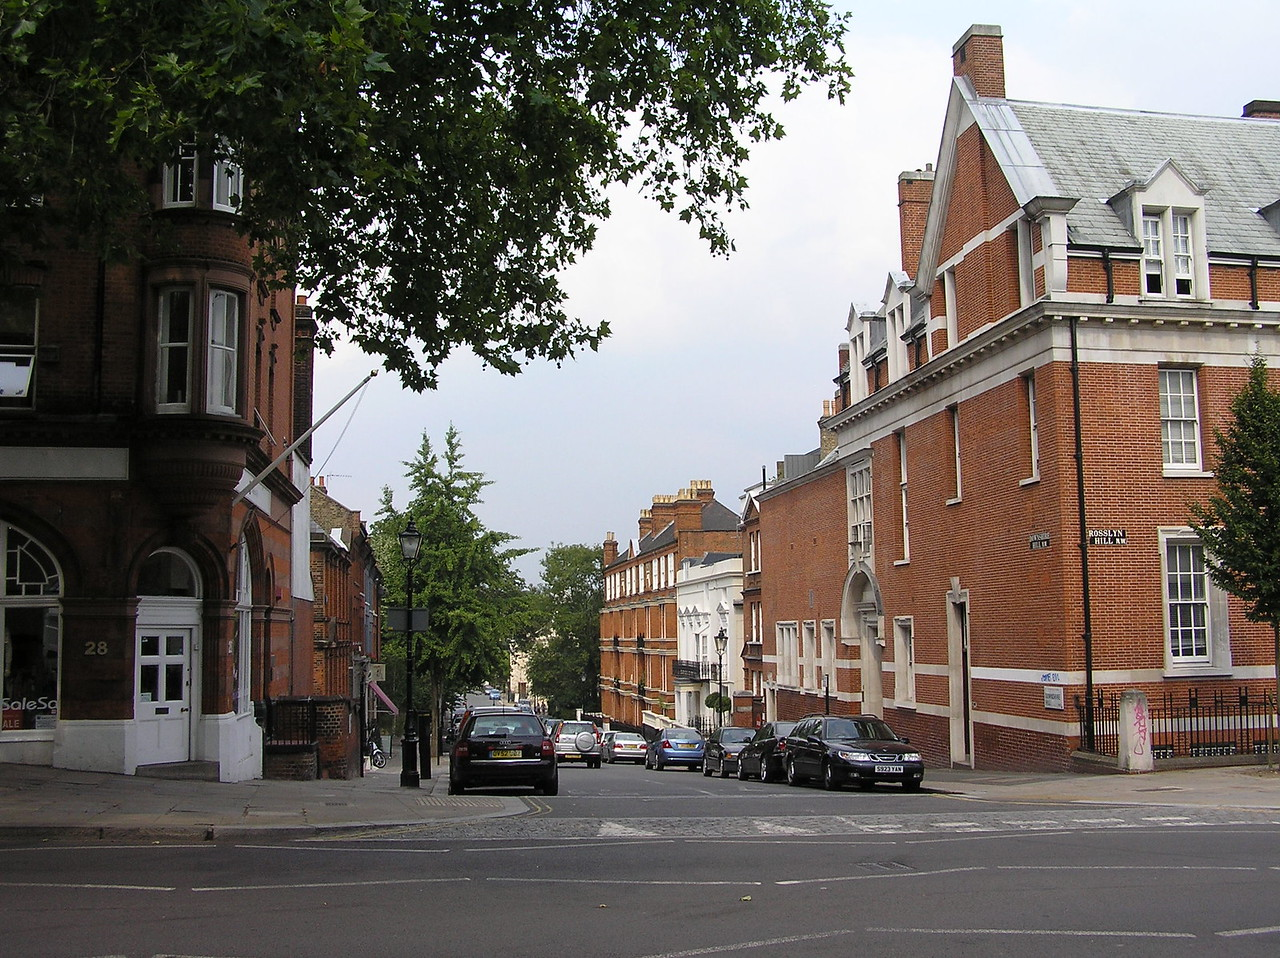 Jim Henson's England home, still owned by the Henson family, is just off the main street of Hampstead on Downshire Hill. It is the white house on the right side of the street.